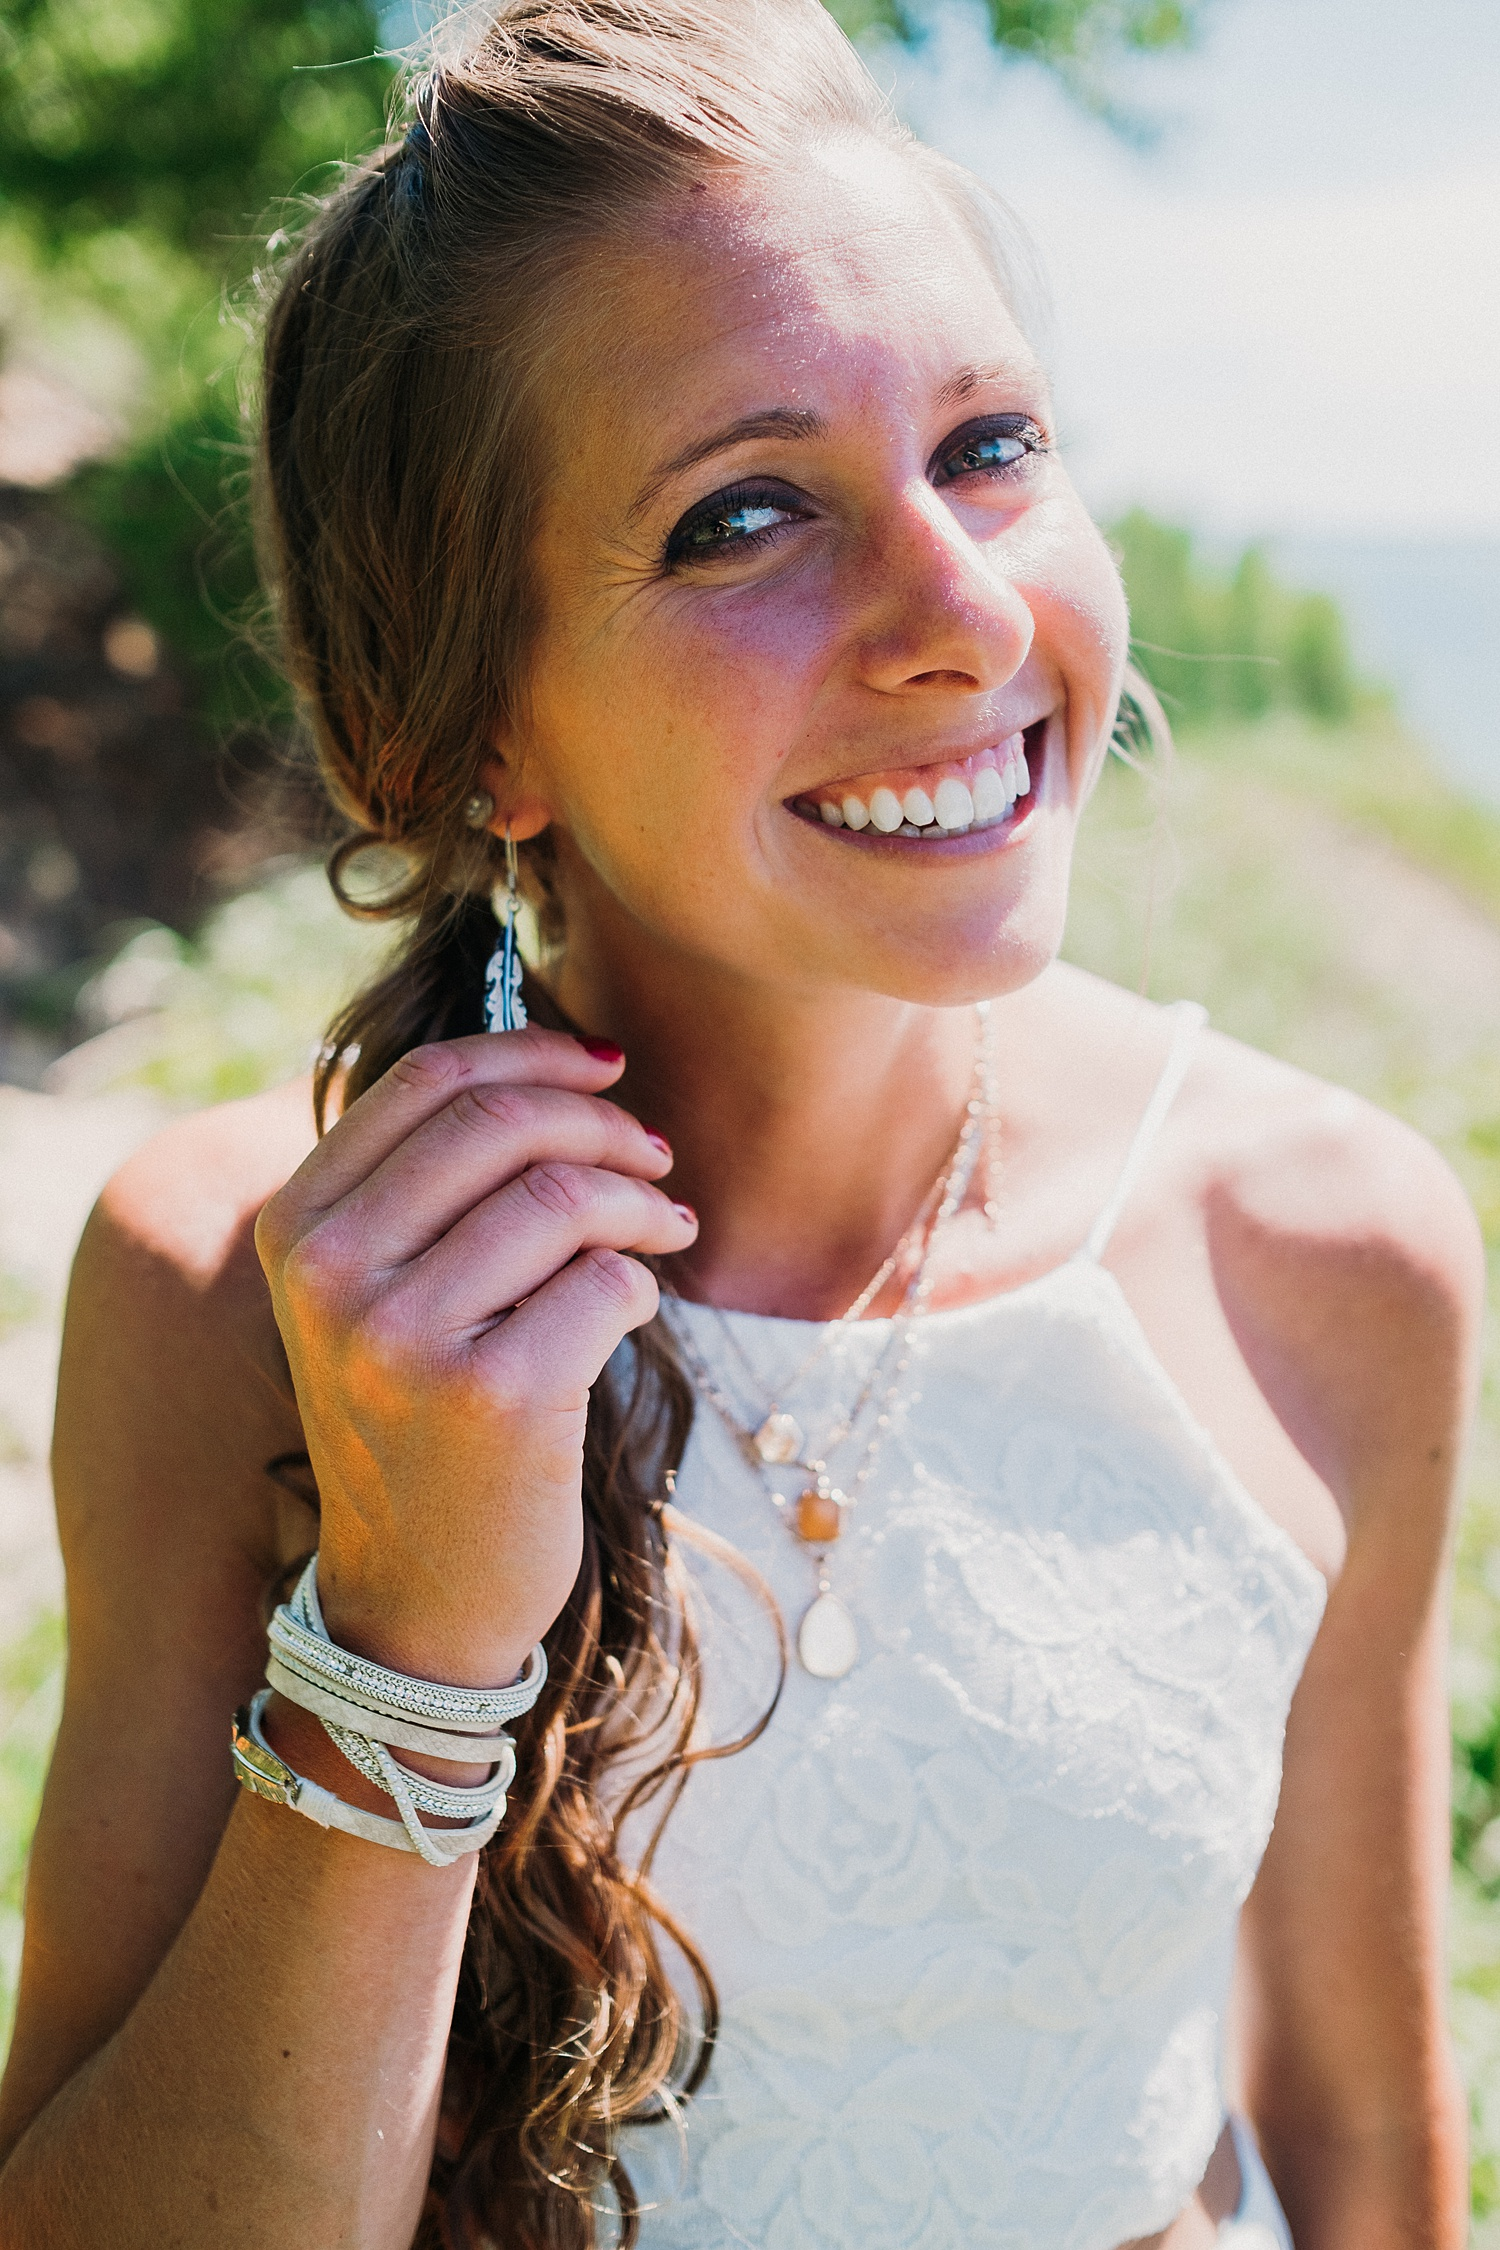 Bride Shows Earrings